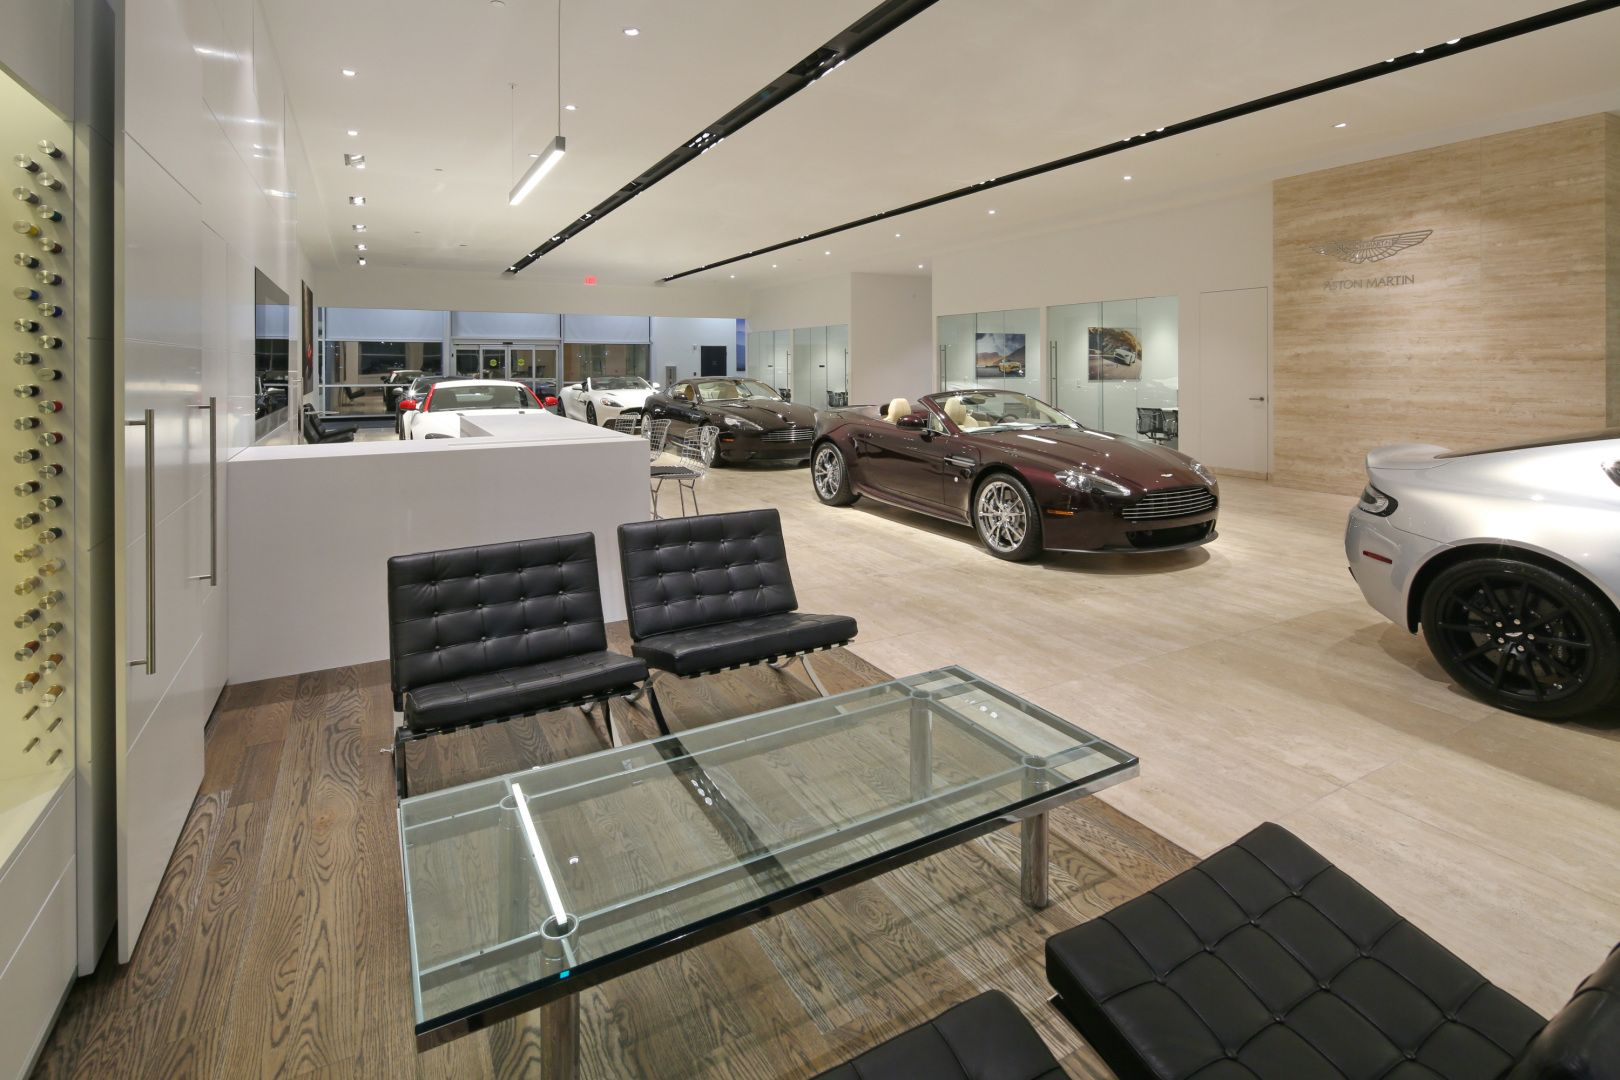 Wmphoenix Recently Completed Architectural And Interior Design Services For The Renovation Of A 4 200 Interior Design Services Interior Design Service Design